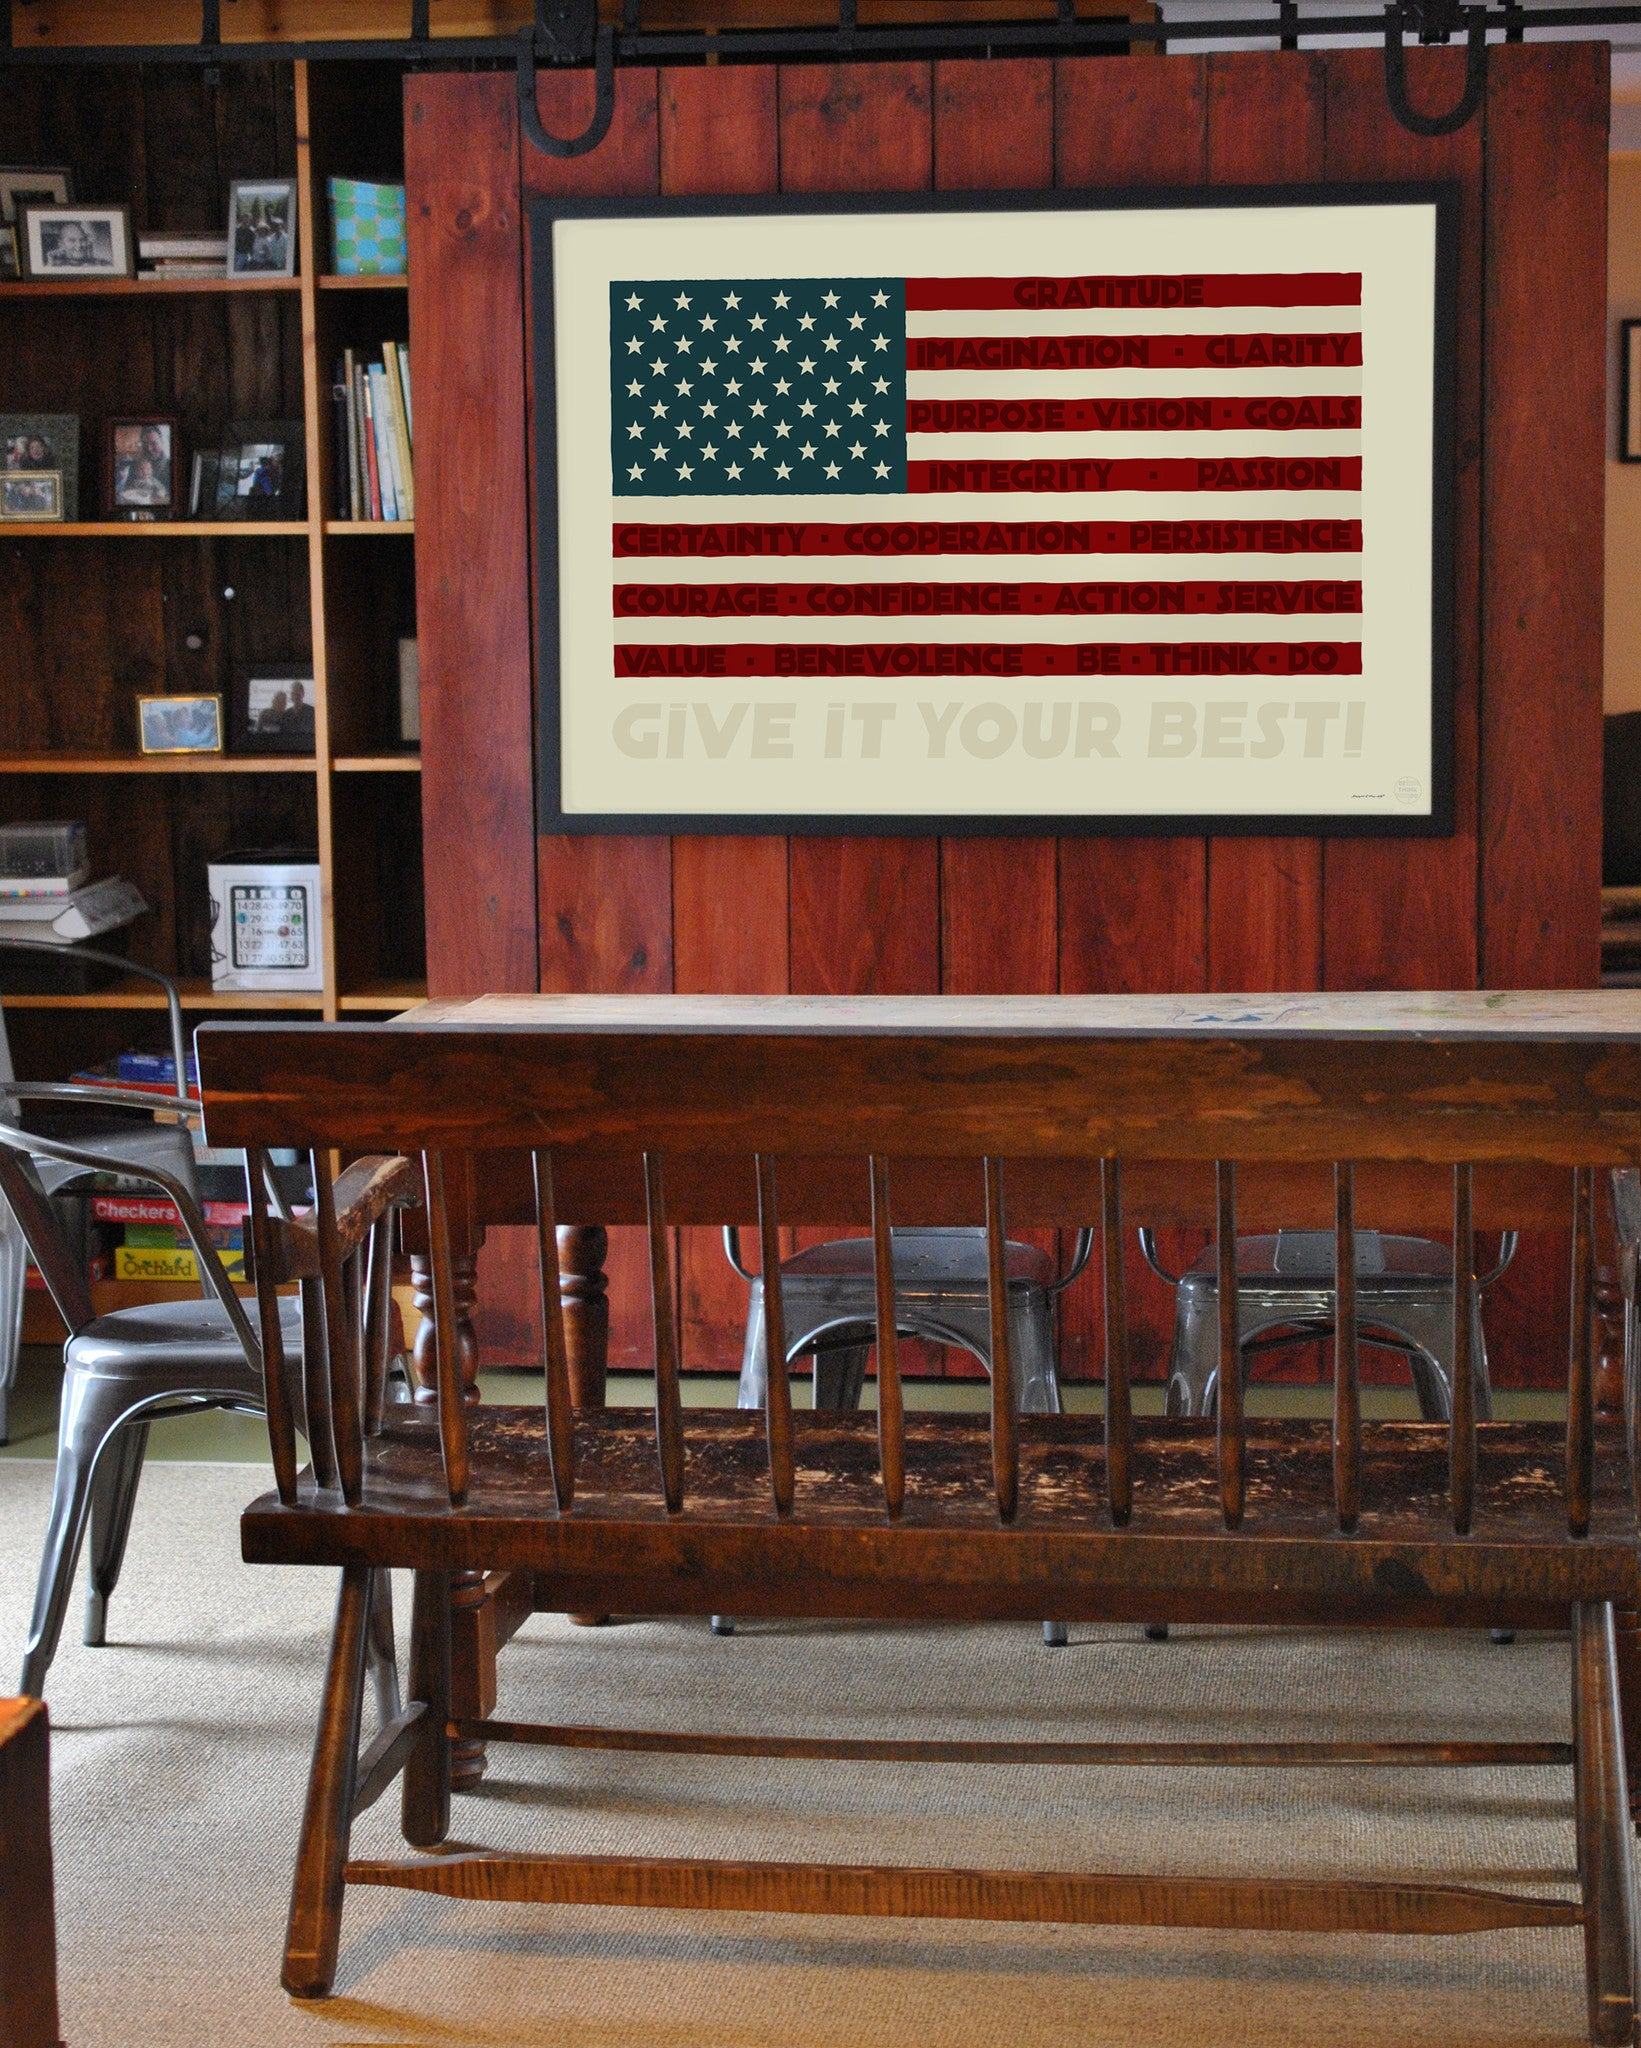 "GIVE IT YOUR BEST! USA Flag Art Print 36"" x 53"" Framed Wall Poster"